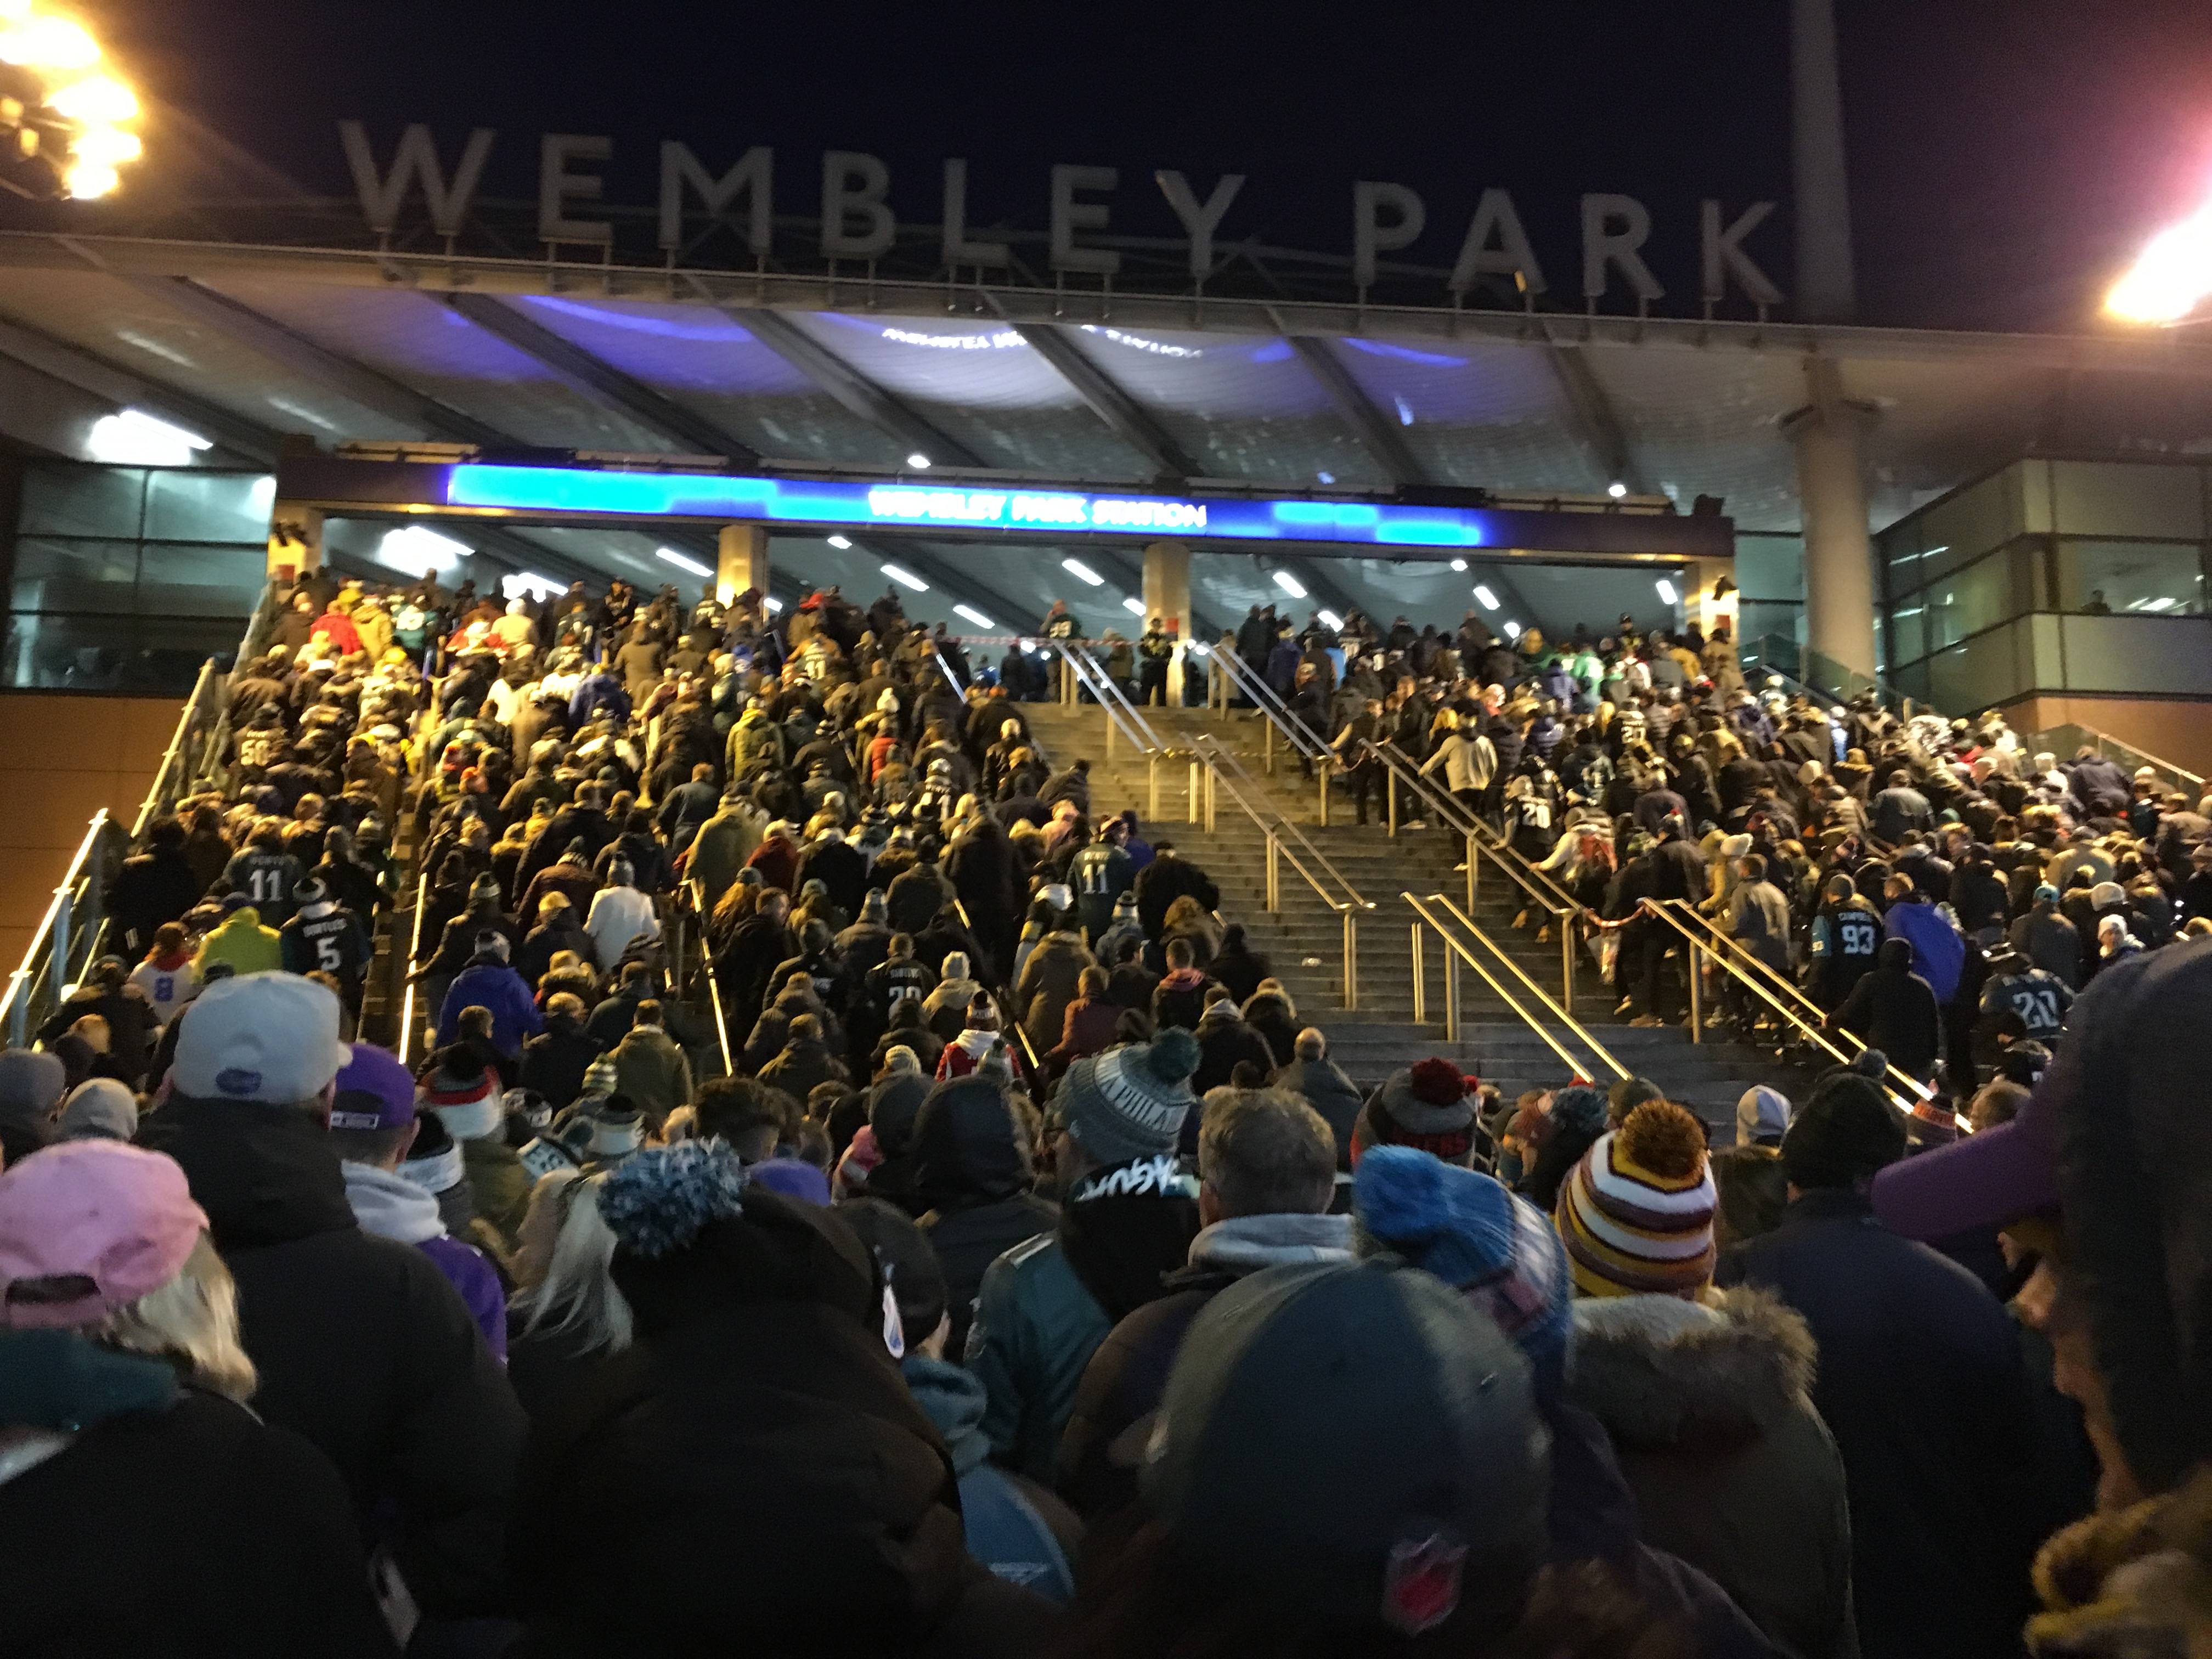 Lines to the underground at Wembley park after an NFL game